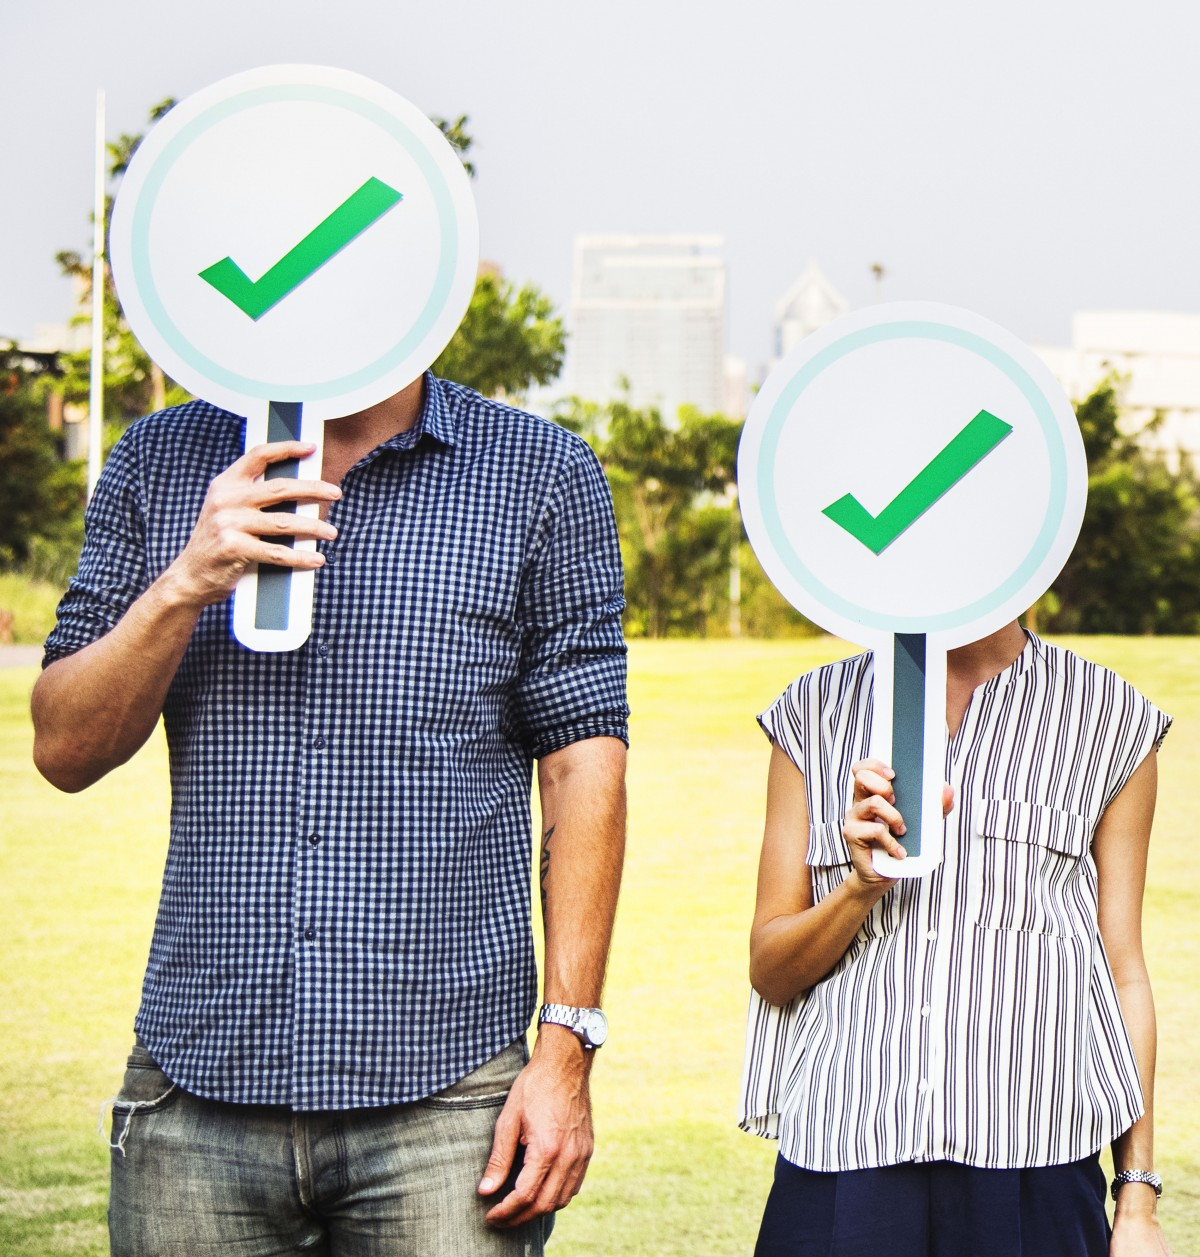 man and woman standing in a field holding checkmark signs in front of their faces